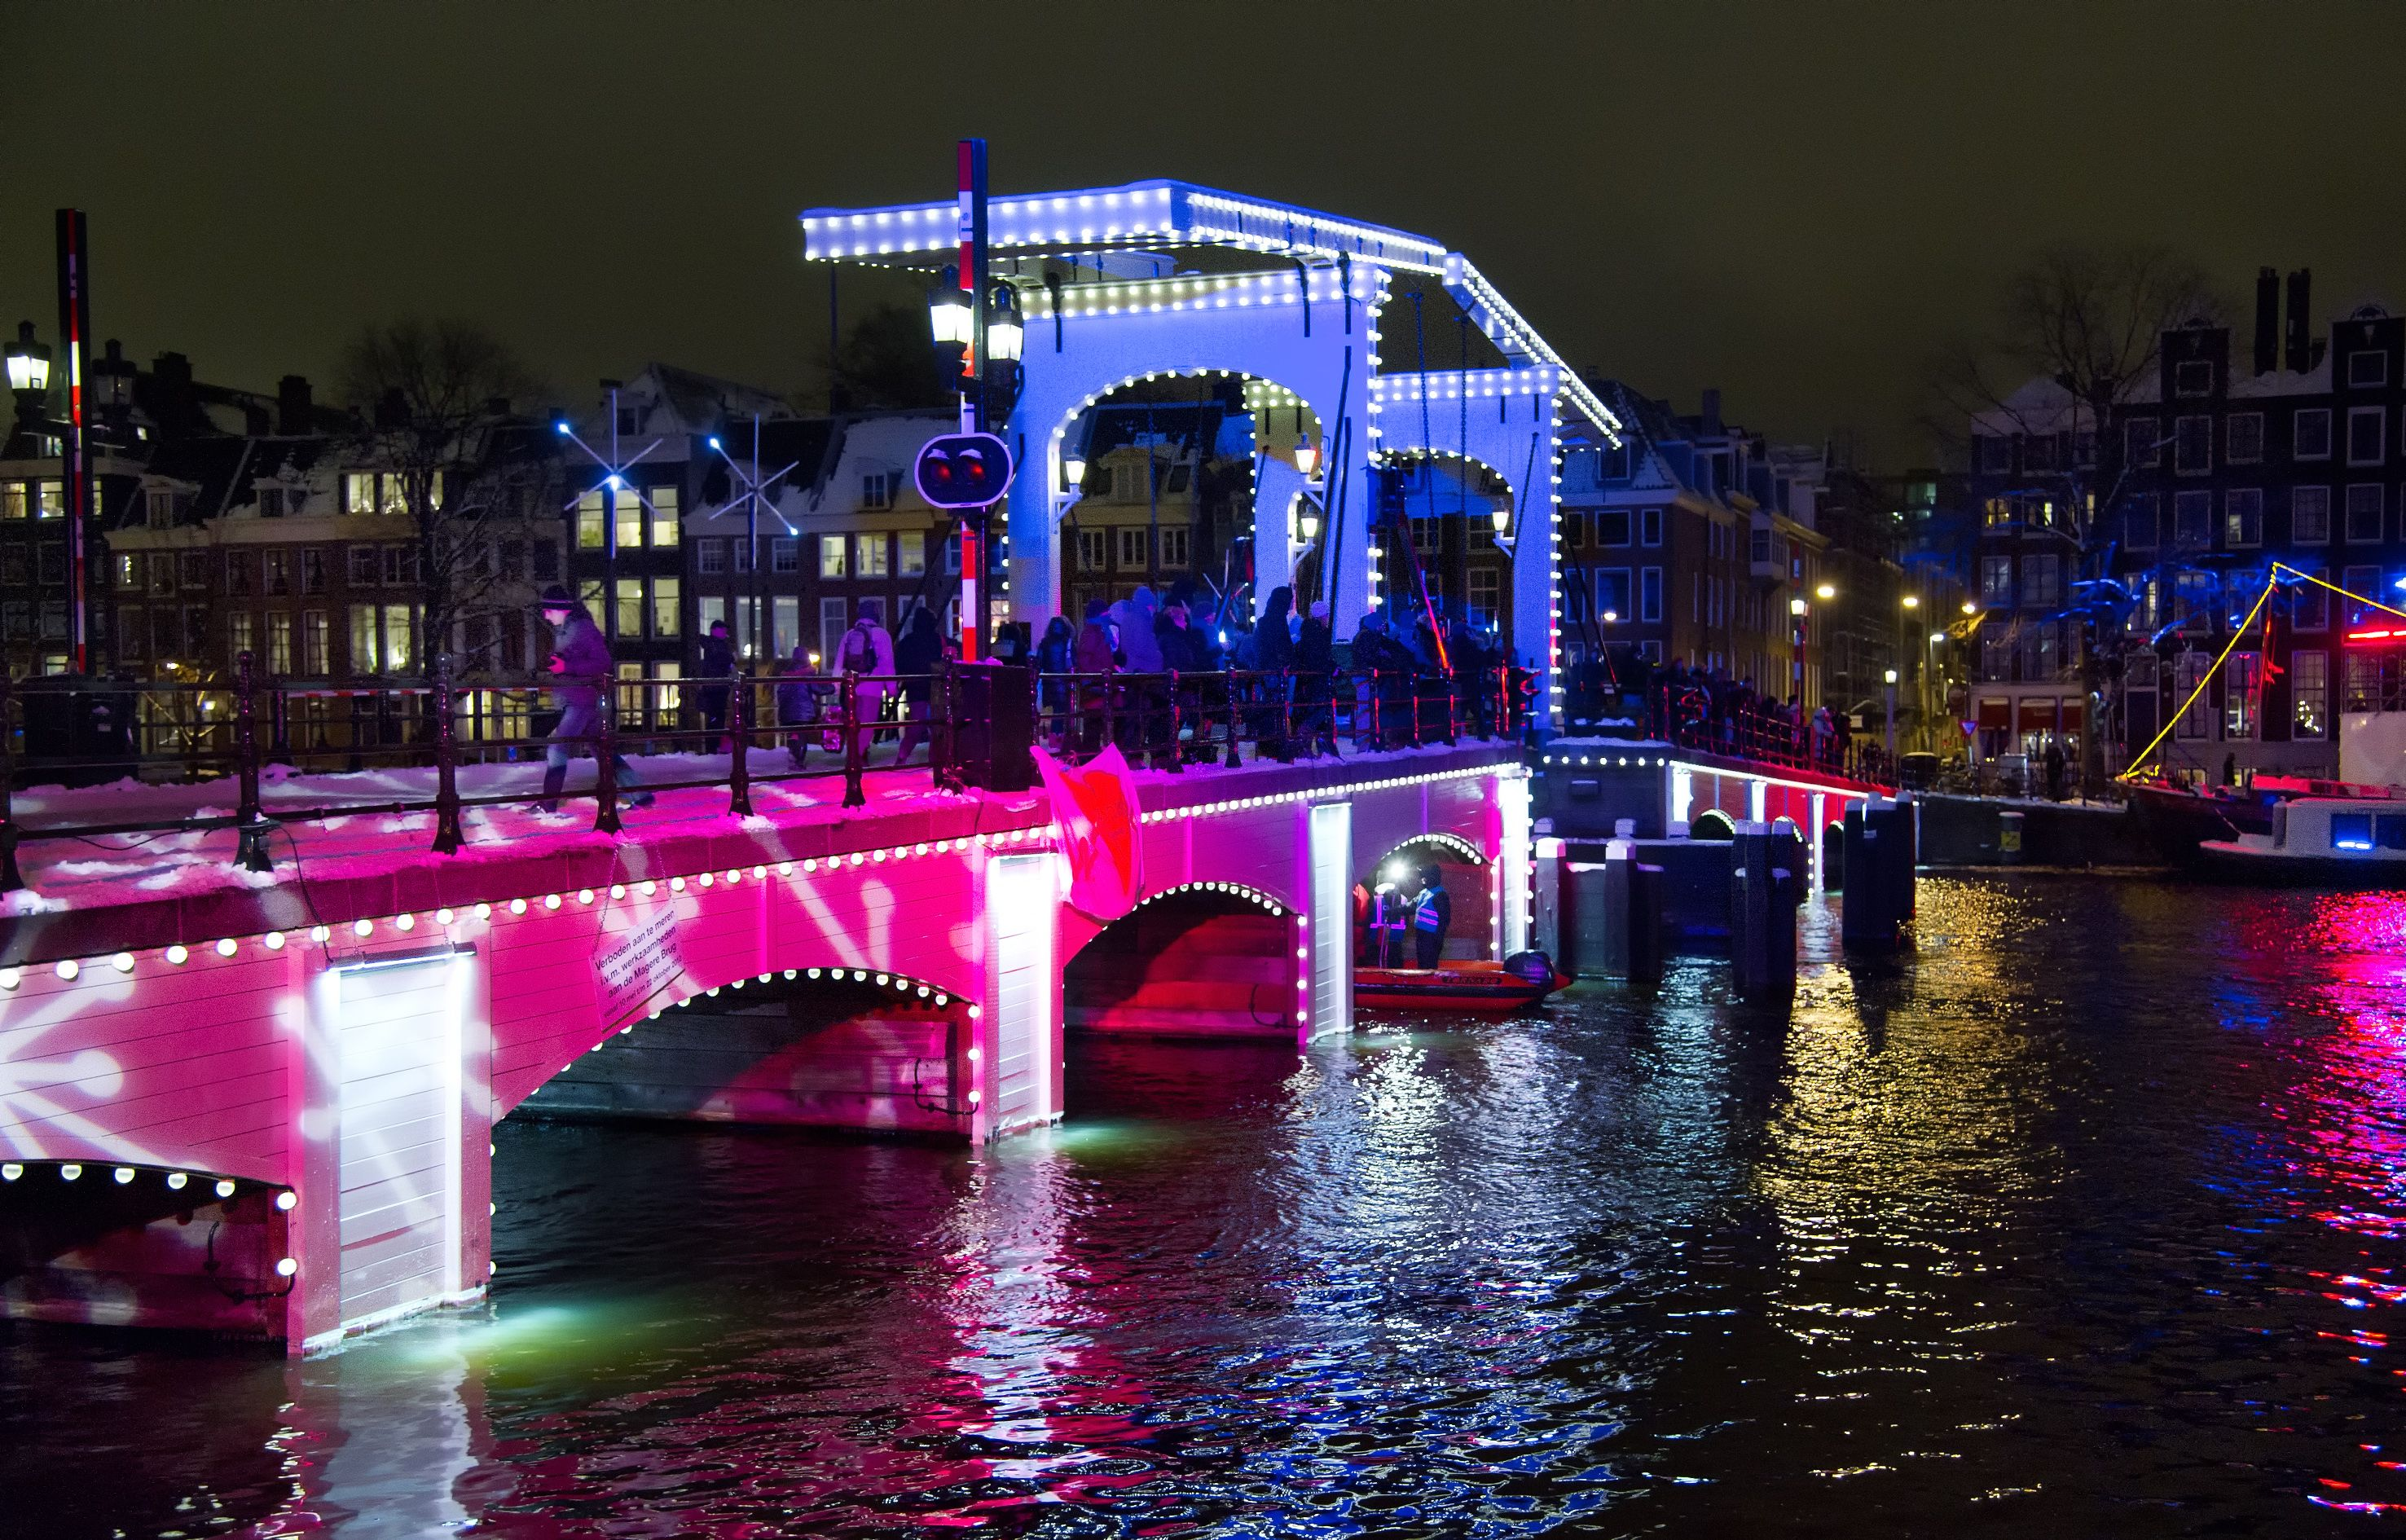 Verlichting Festival Amsterdam Amsterdam Light Festival The Netherlands Amsterdam Travel